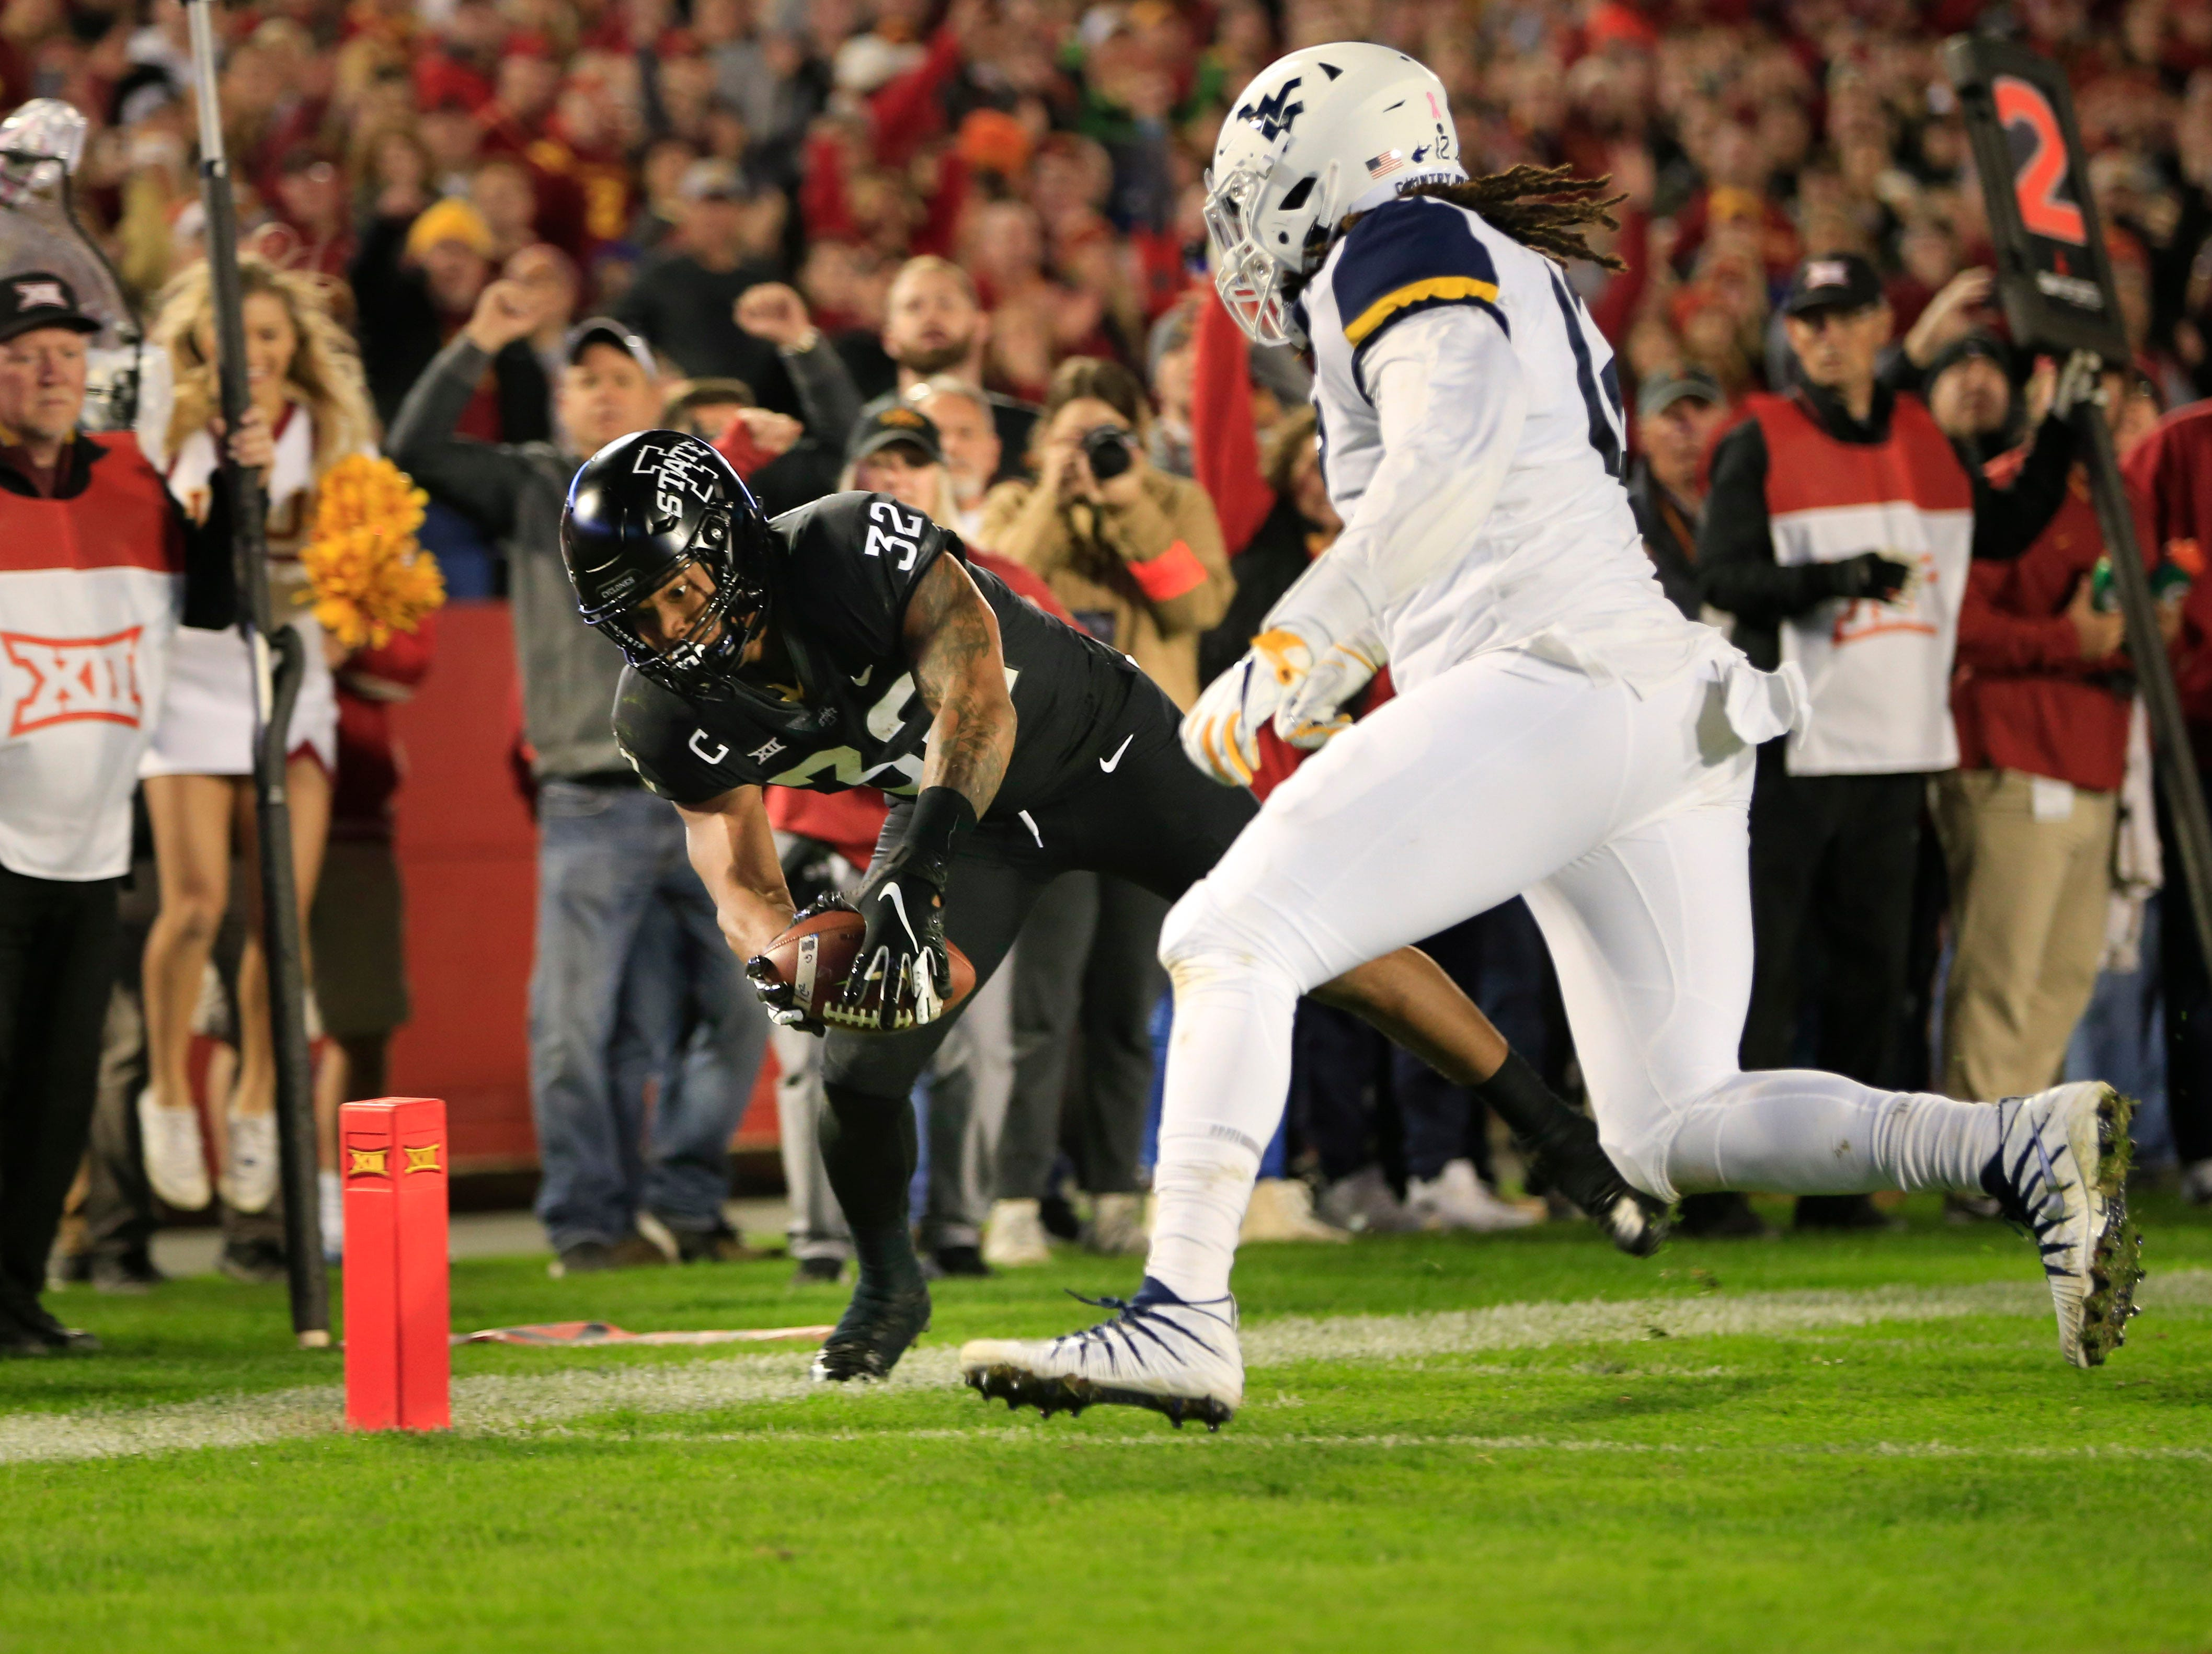 Iowa State running back David Montgomery dives for the end zone during the Iowa State West Virginia game at Jack Trice Stadium Saturday, Oct. 13, 2018.